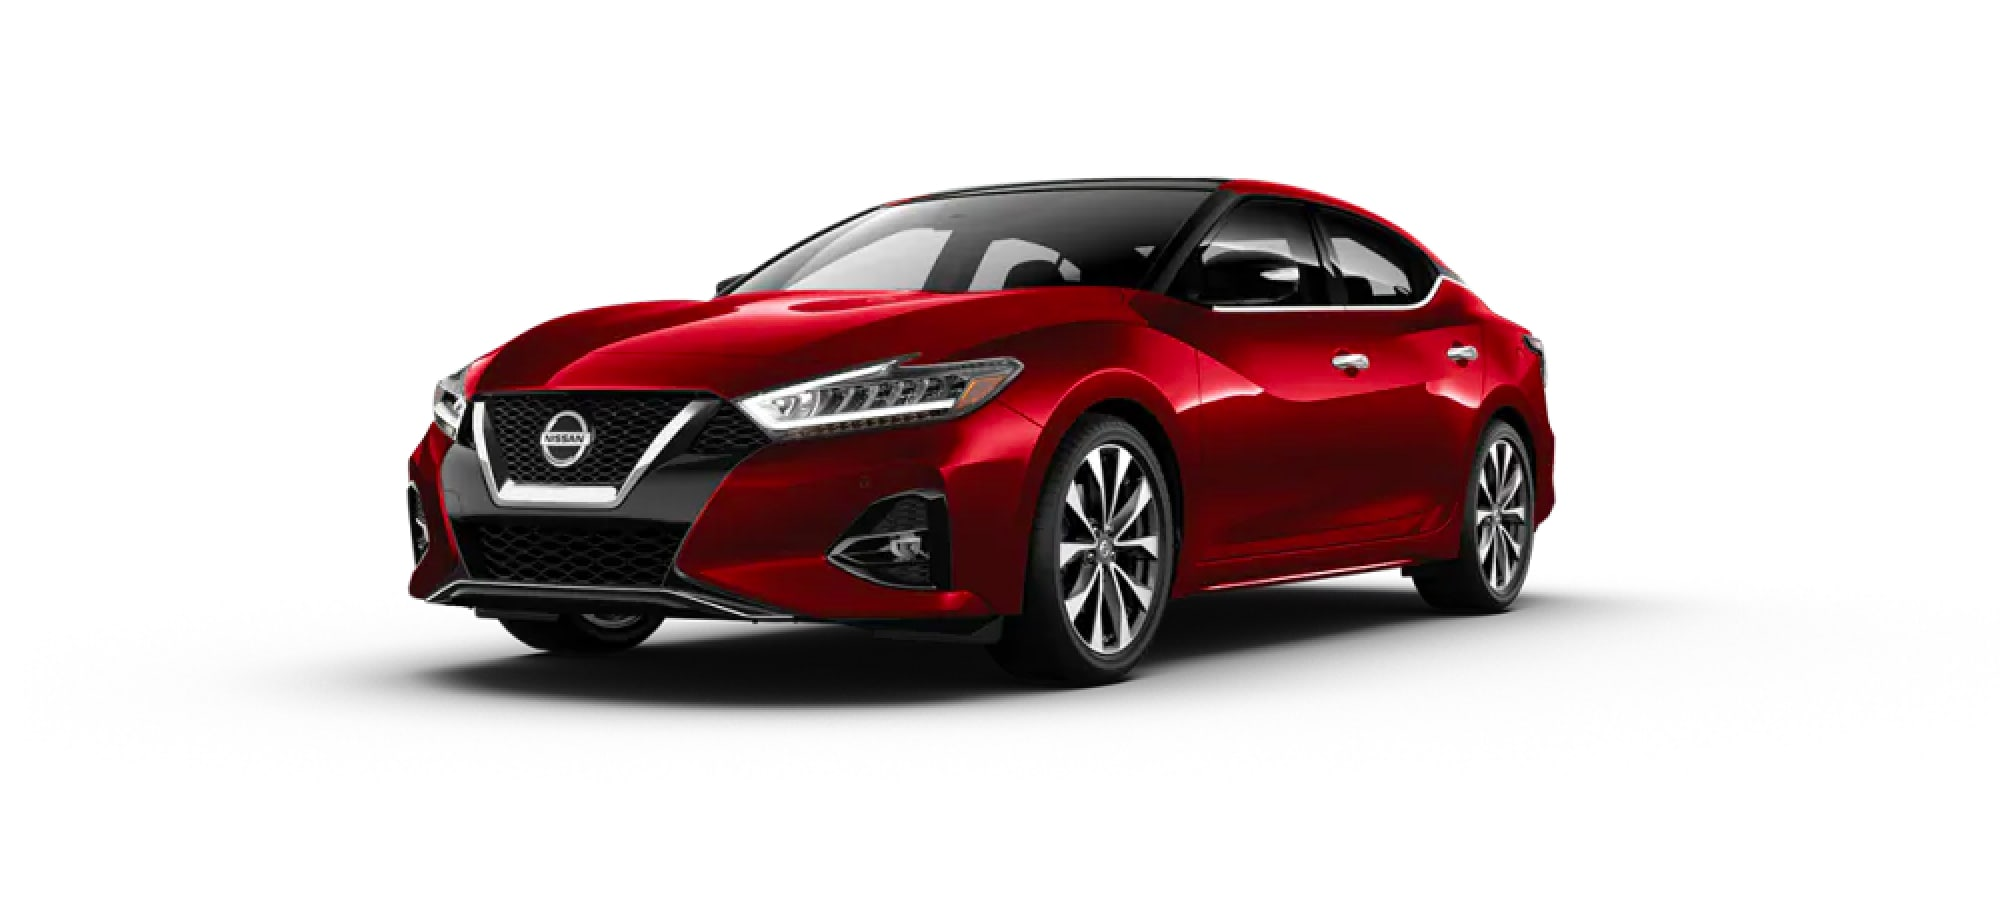 2020 Nissan Maxima in Carnelian Red Tintcoat